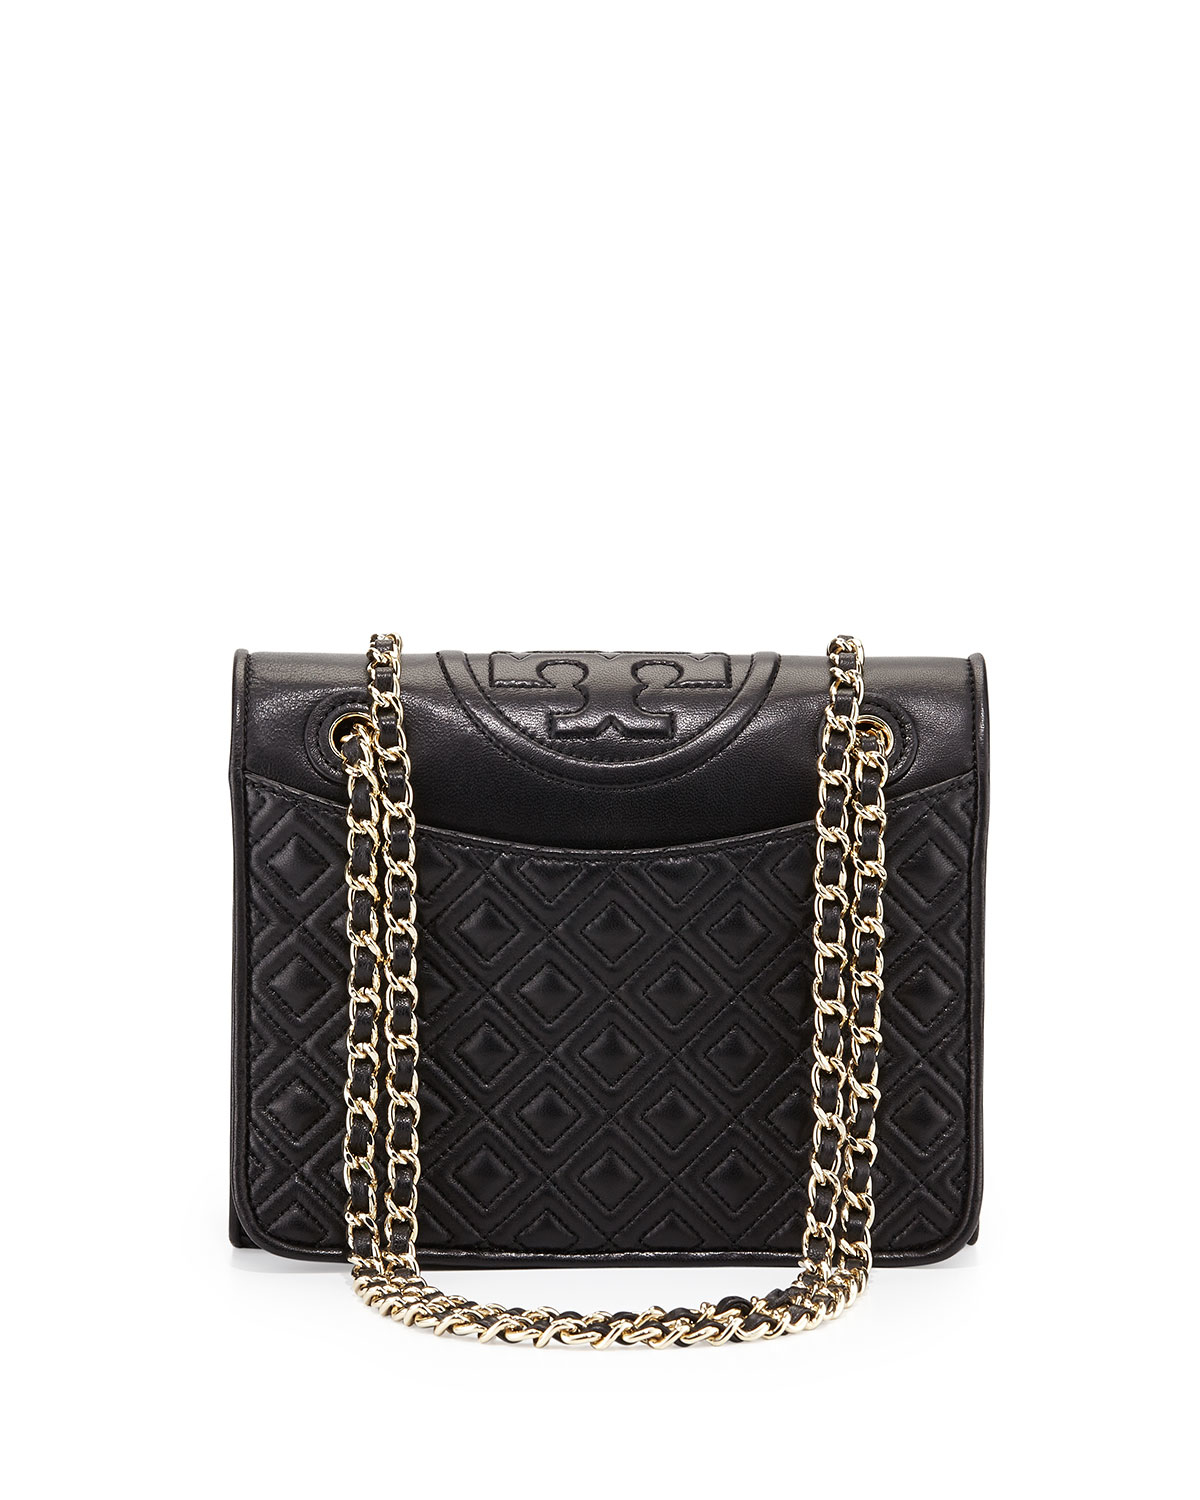 462119e5b2dc Lyst - Tory Burch Fleming Medium Quilted Shoulder Bag in Black